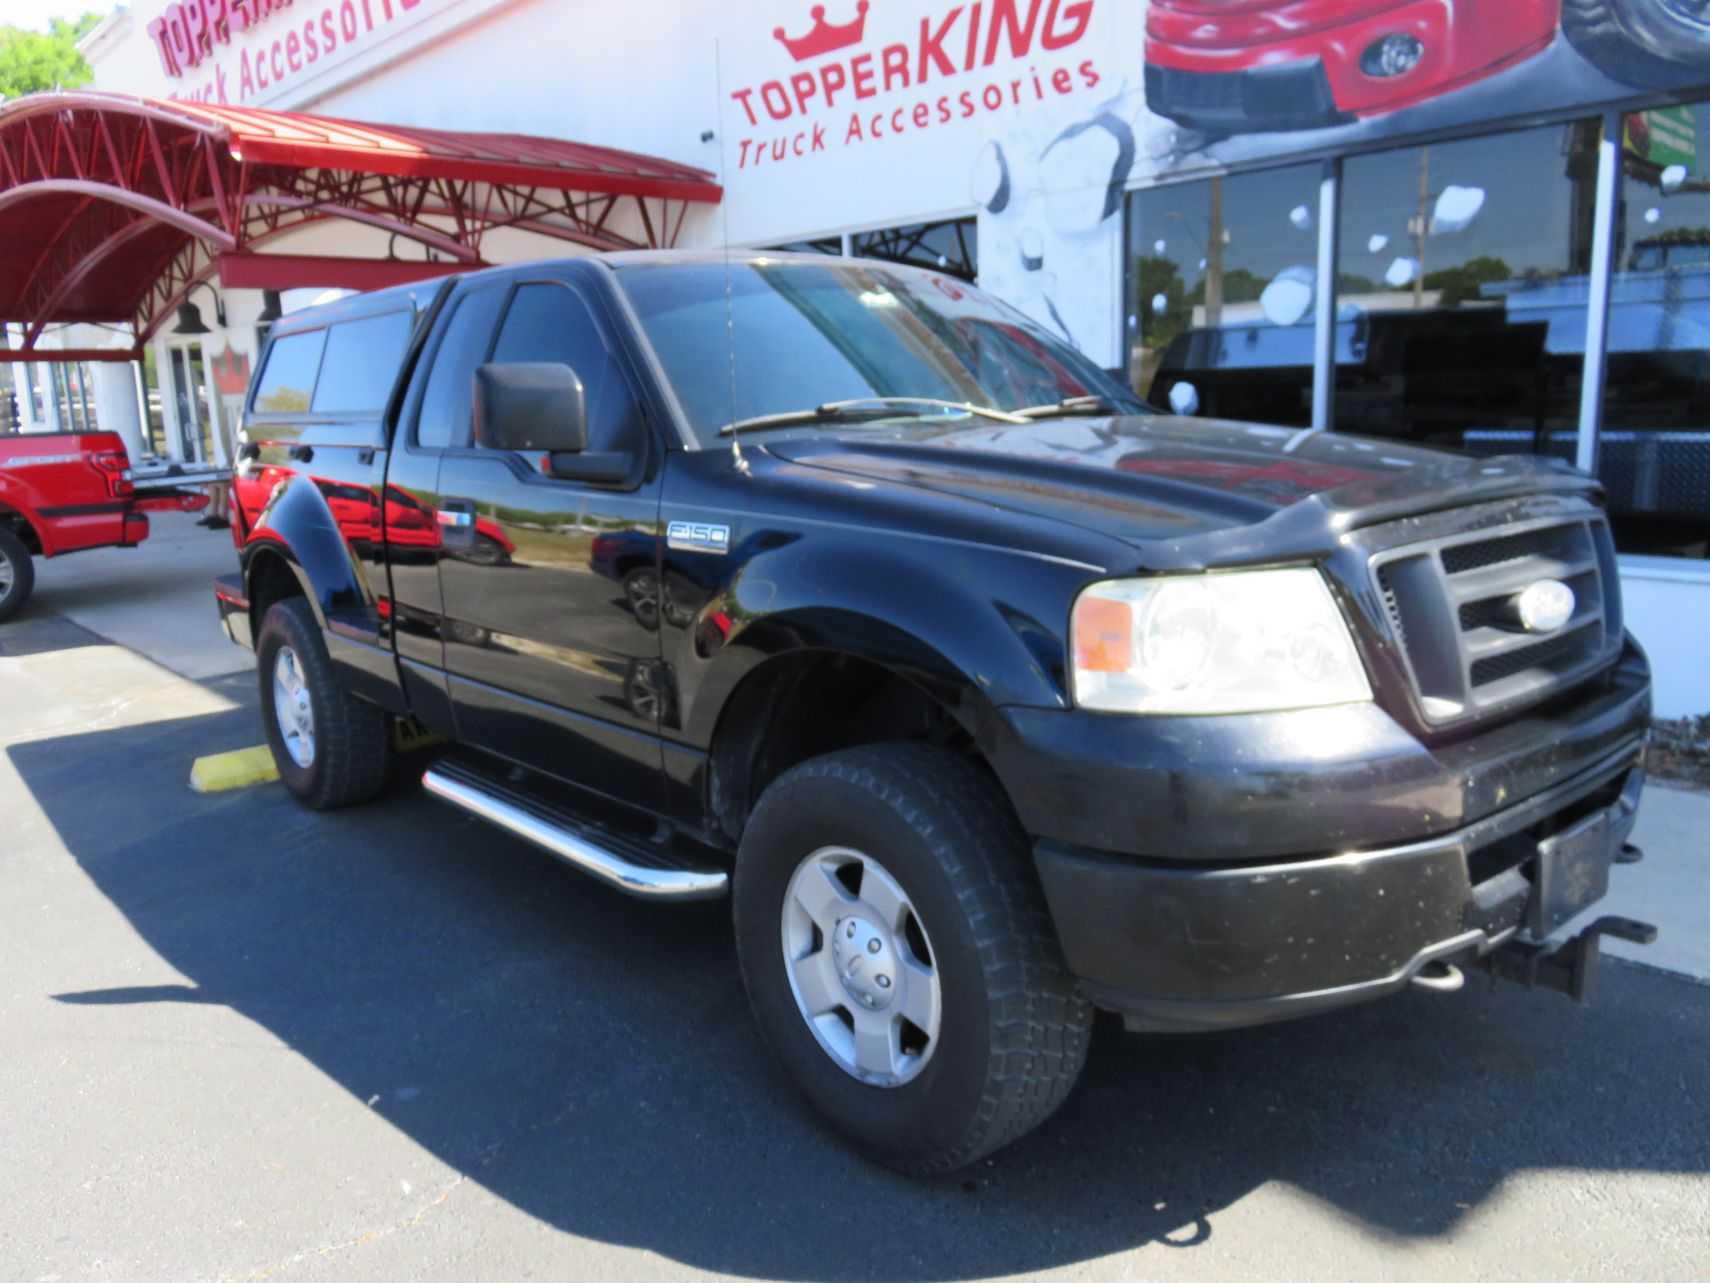 2005 Ford F150 Stepside with TK Defender, Bug Guard, Nerf Bars by TopperKING Brandon 813-689-2449 or Clearwater FL 727-530-9066. Call today!